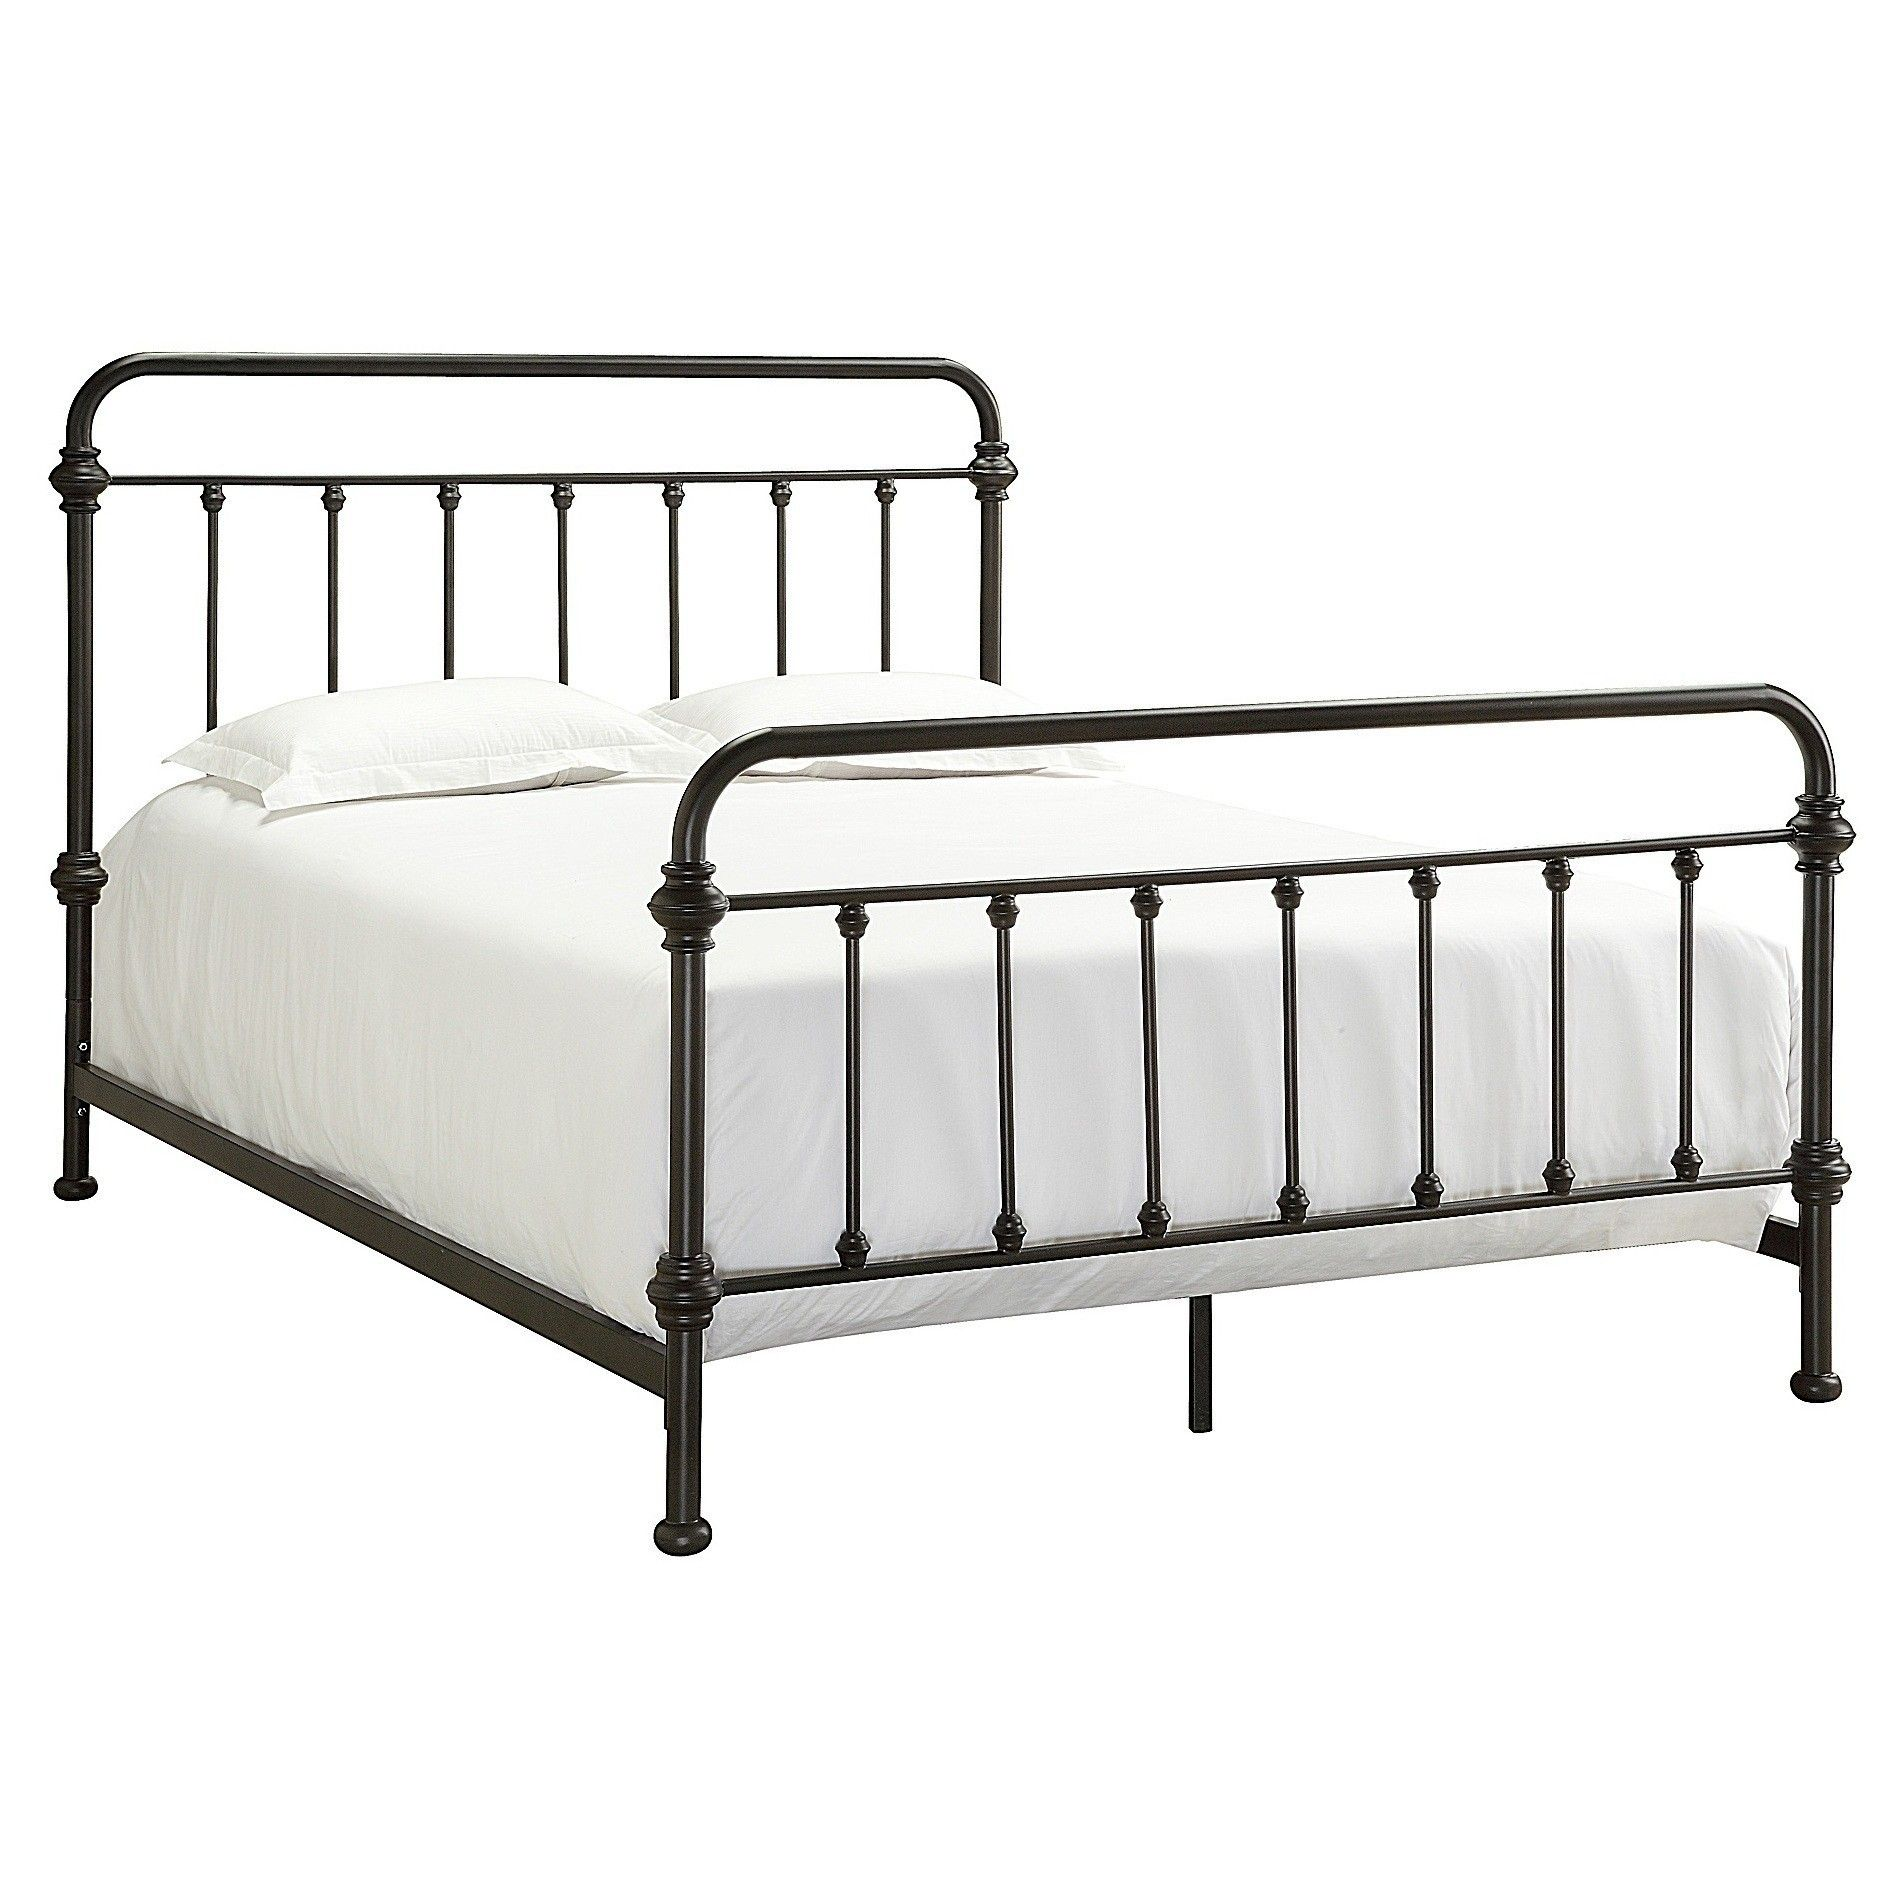 Design An Elegant Bedroom In 5 Easy Steps: Create A Dreamy Bedroom With The Bralton Metal Bed In